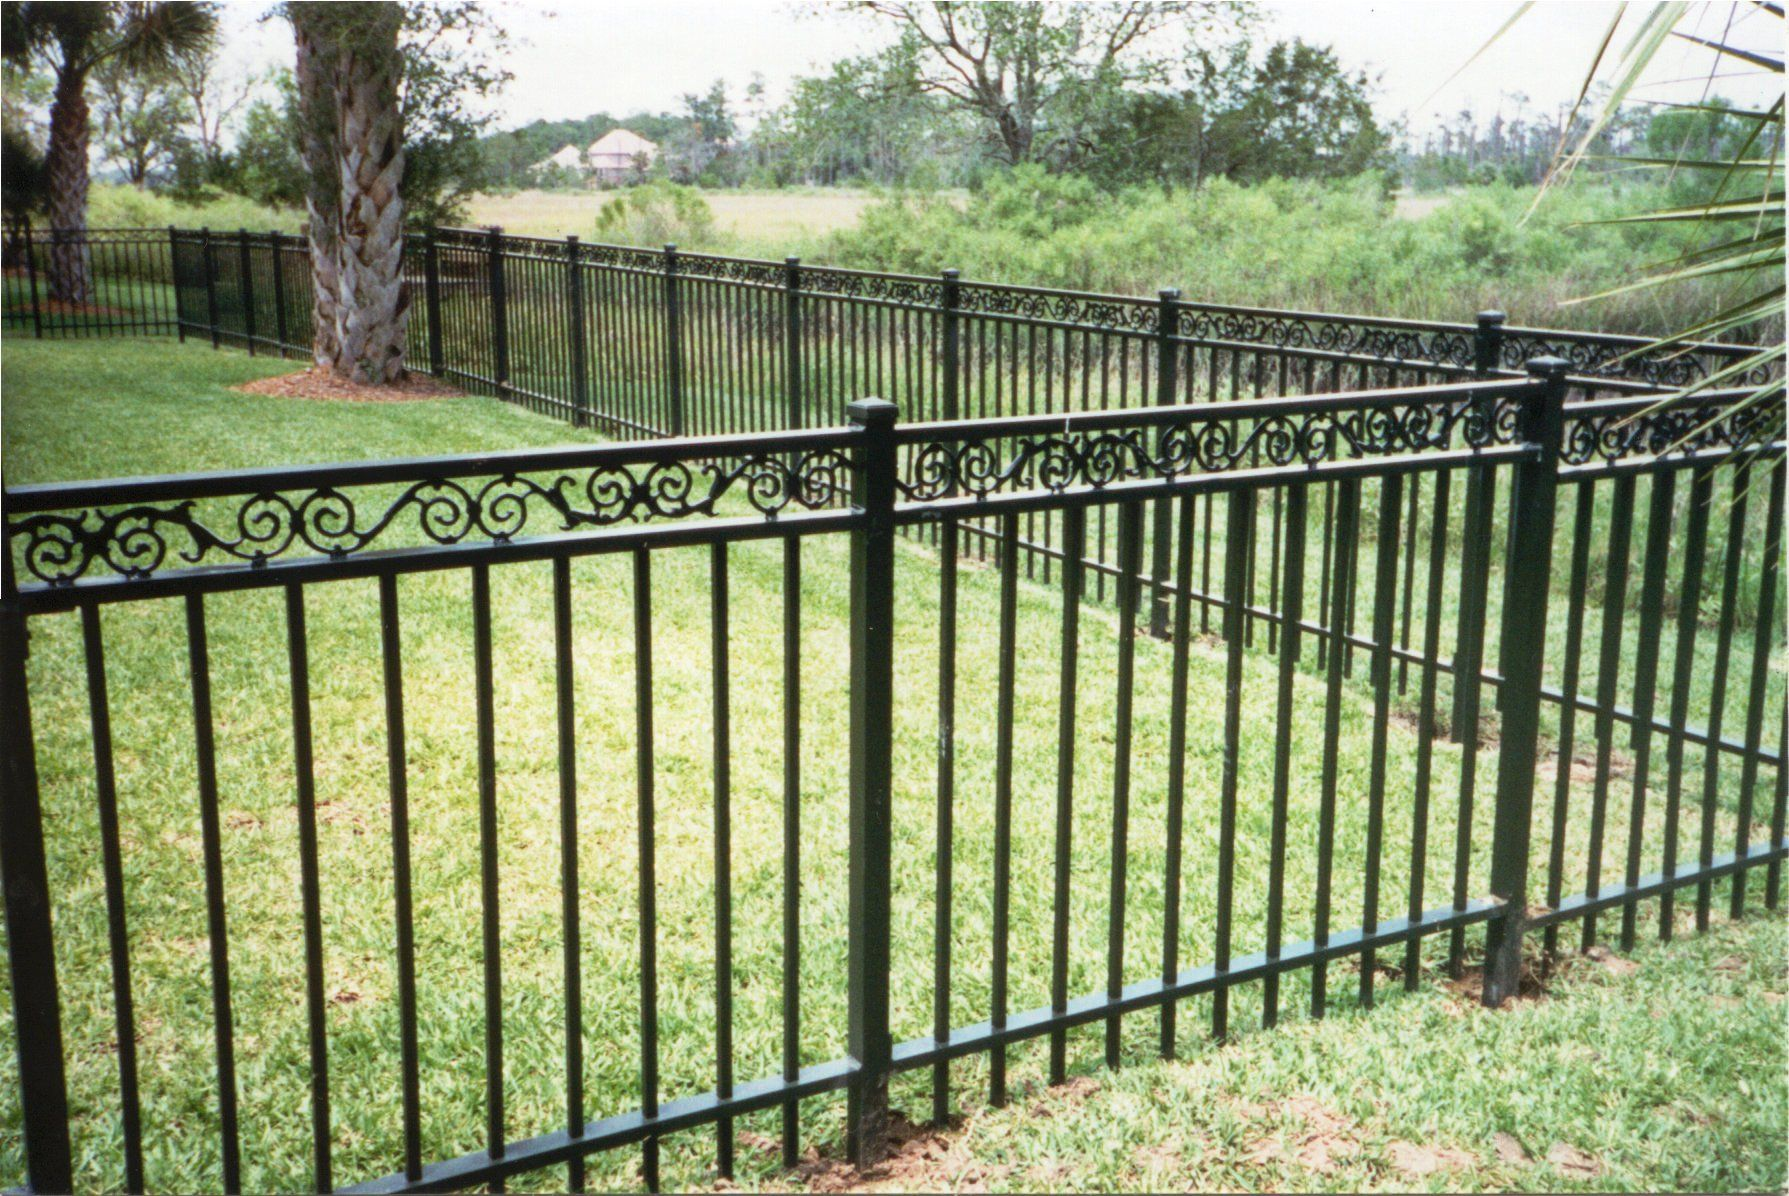 Ornamental railing panels - Wrought Iron Fence Ideas Of Wrought Iron Fences And Gates With Hand Forged Ornamental Iron